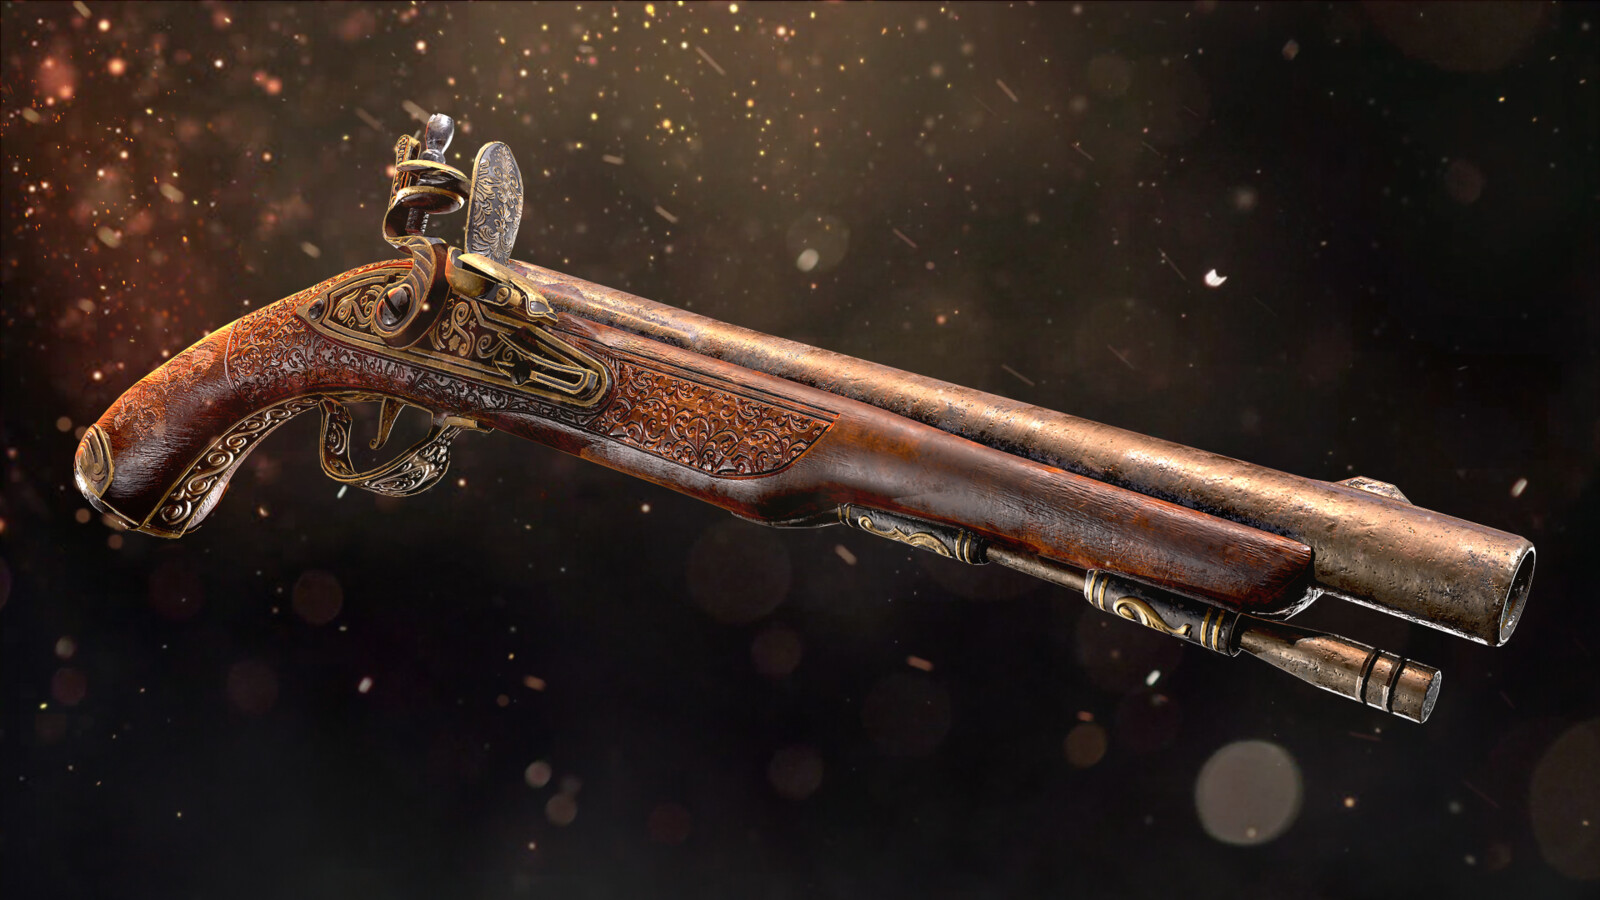 Royal Flintlock